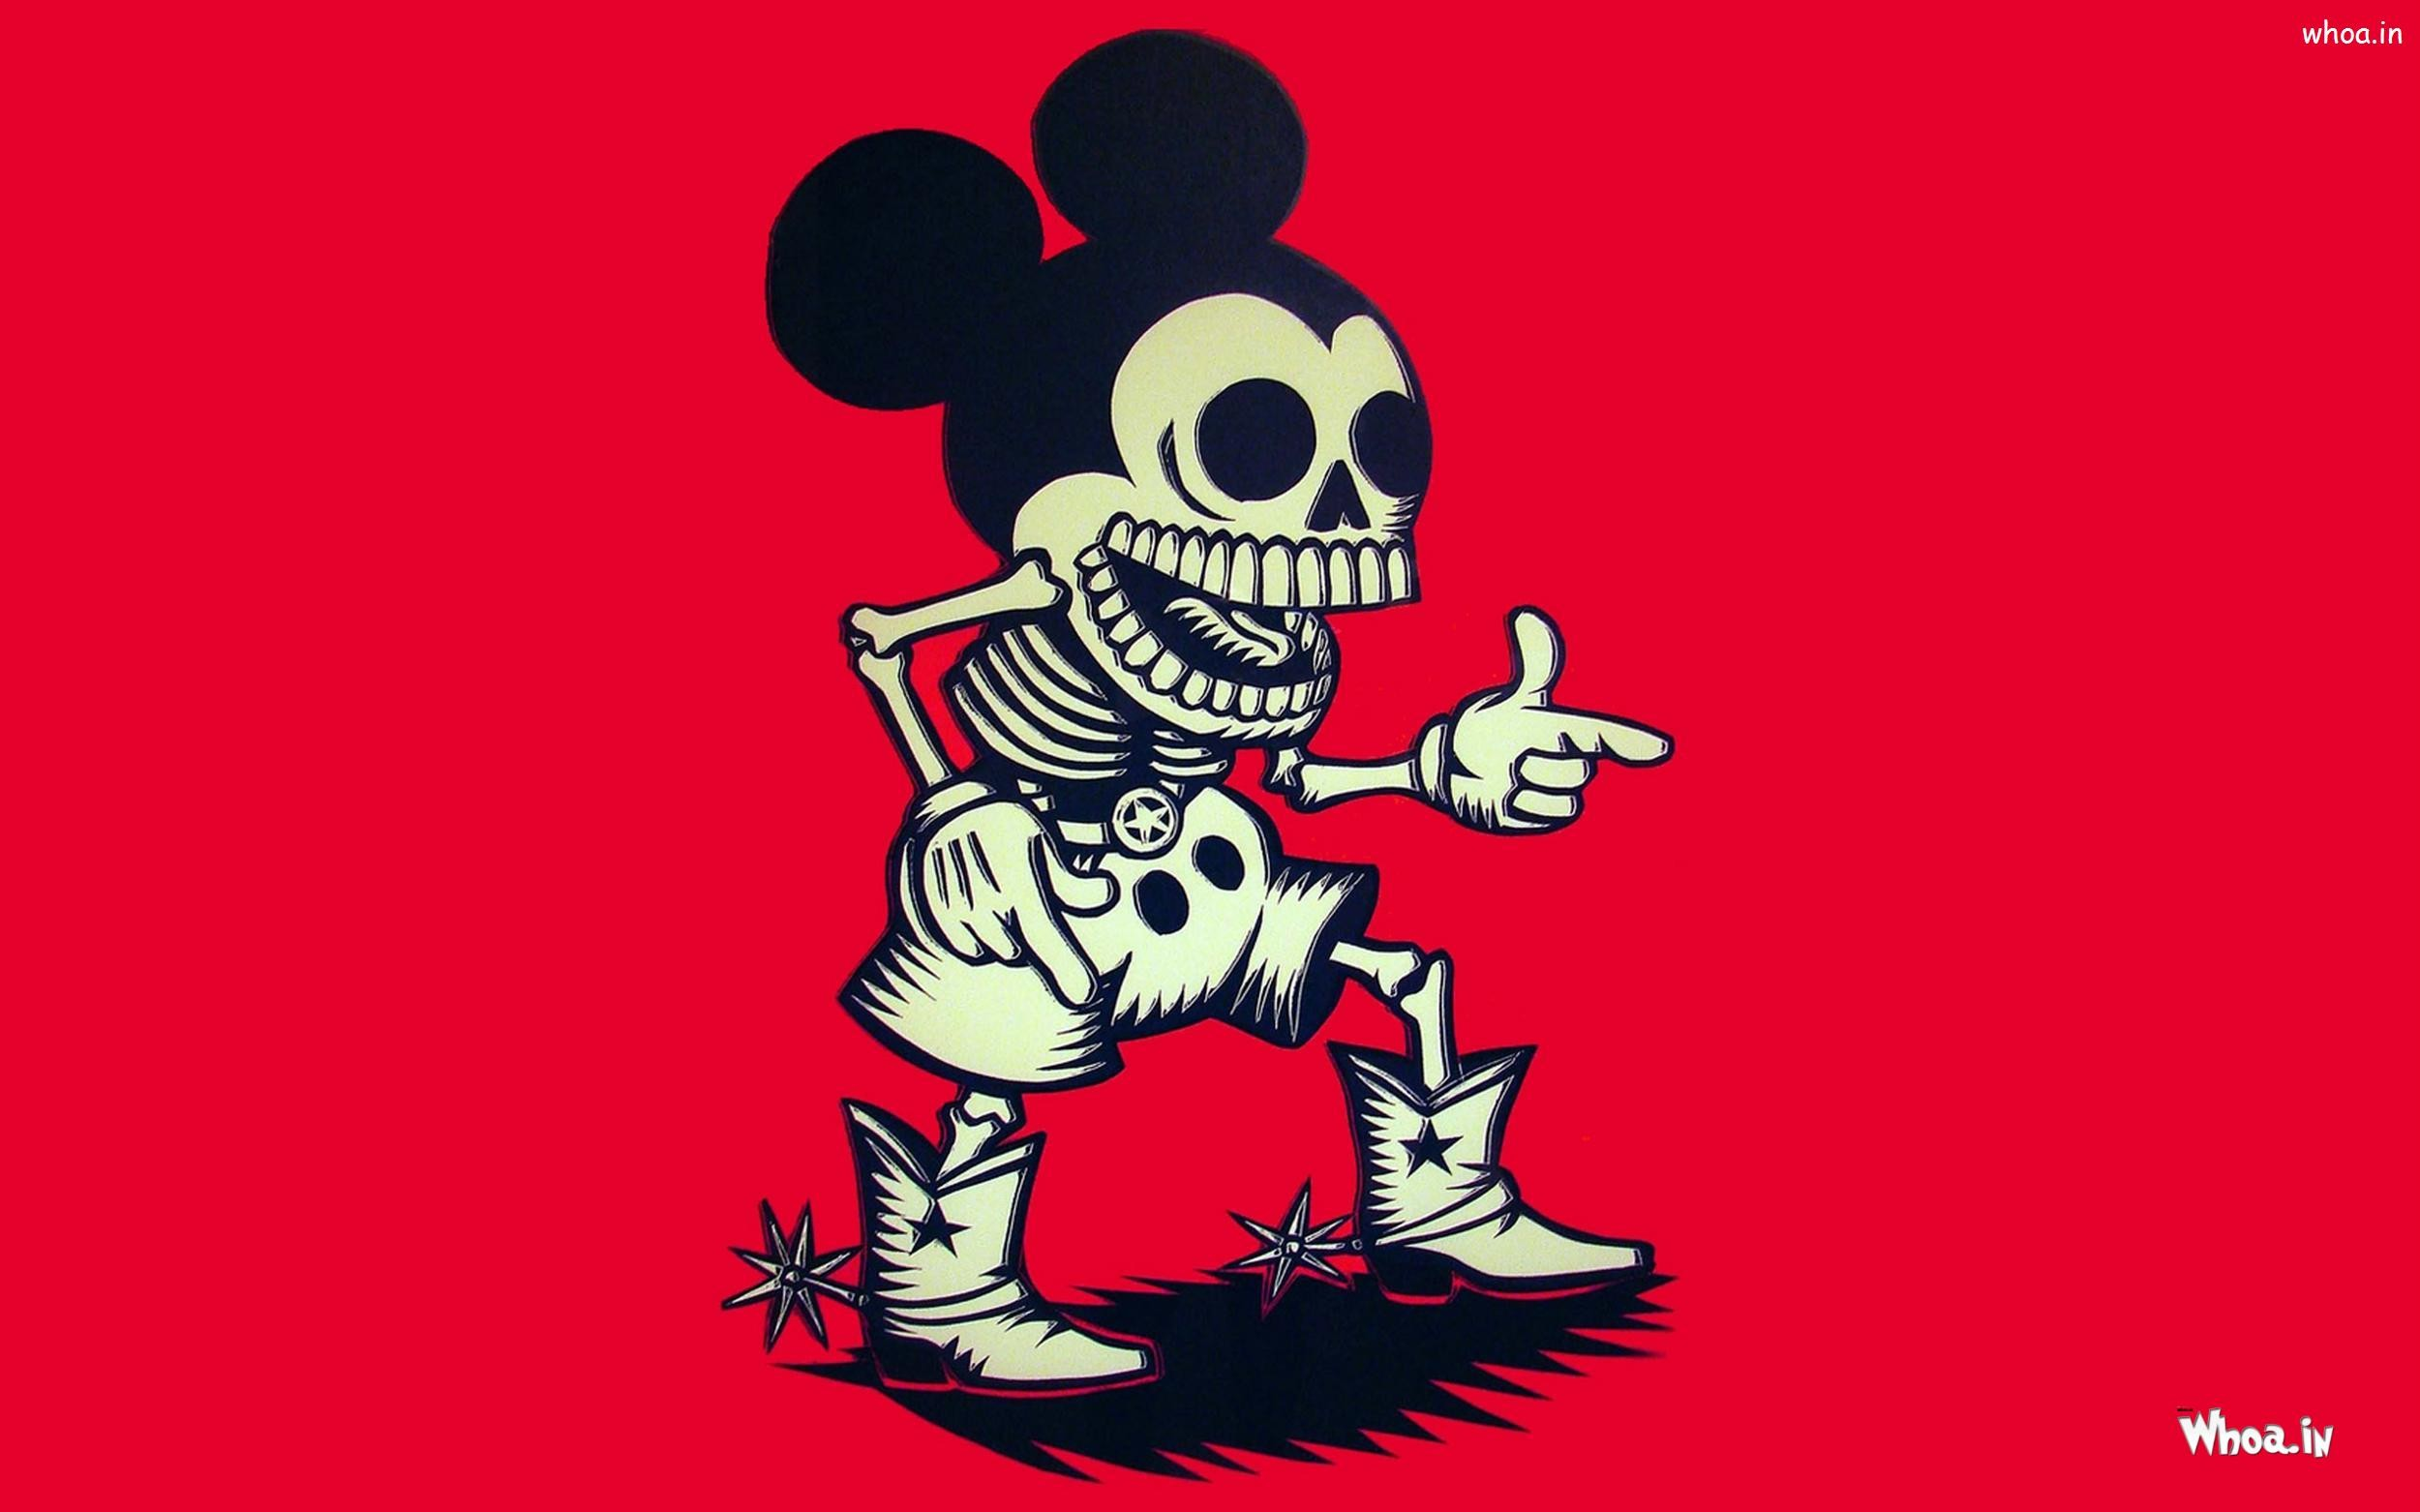 … Mickey Mouse Skull with Red Background Wallpaper …